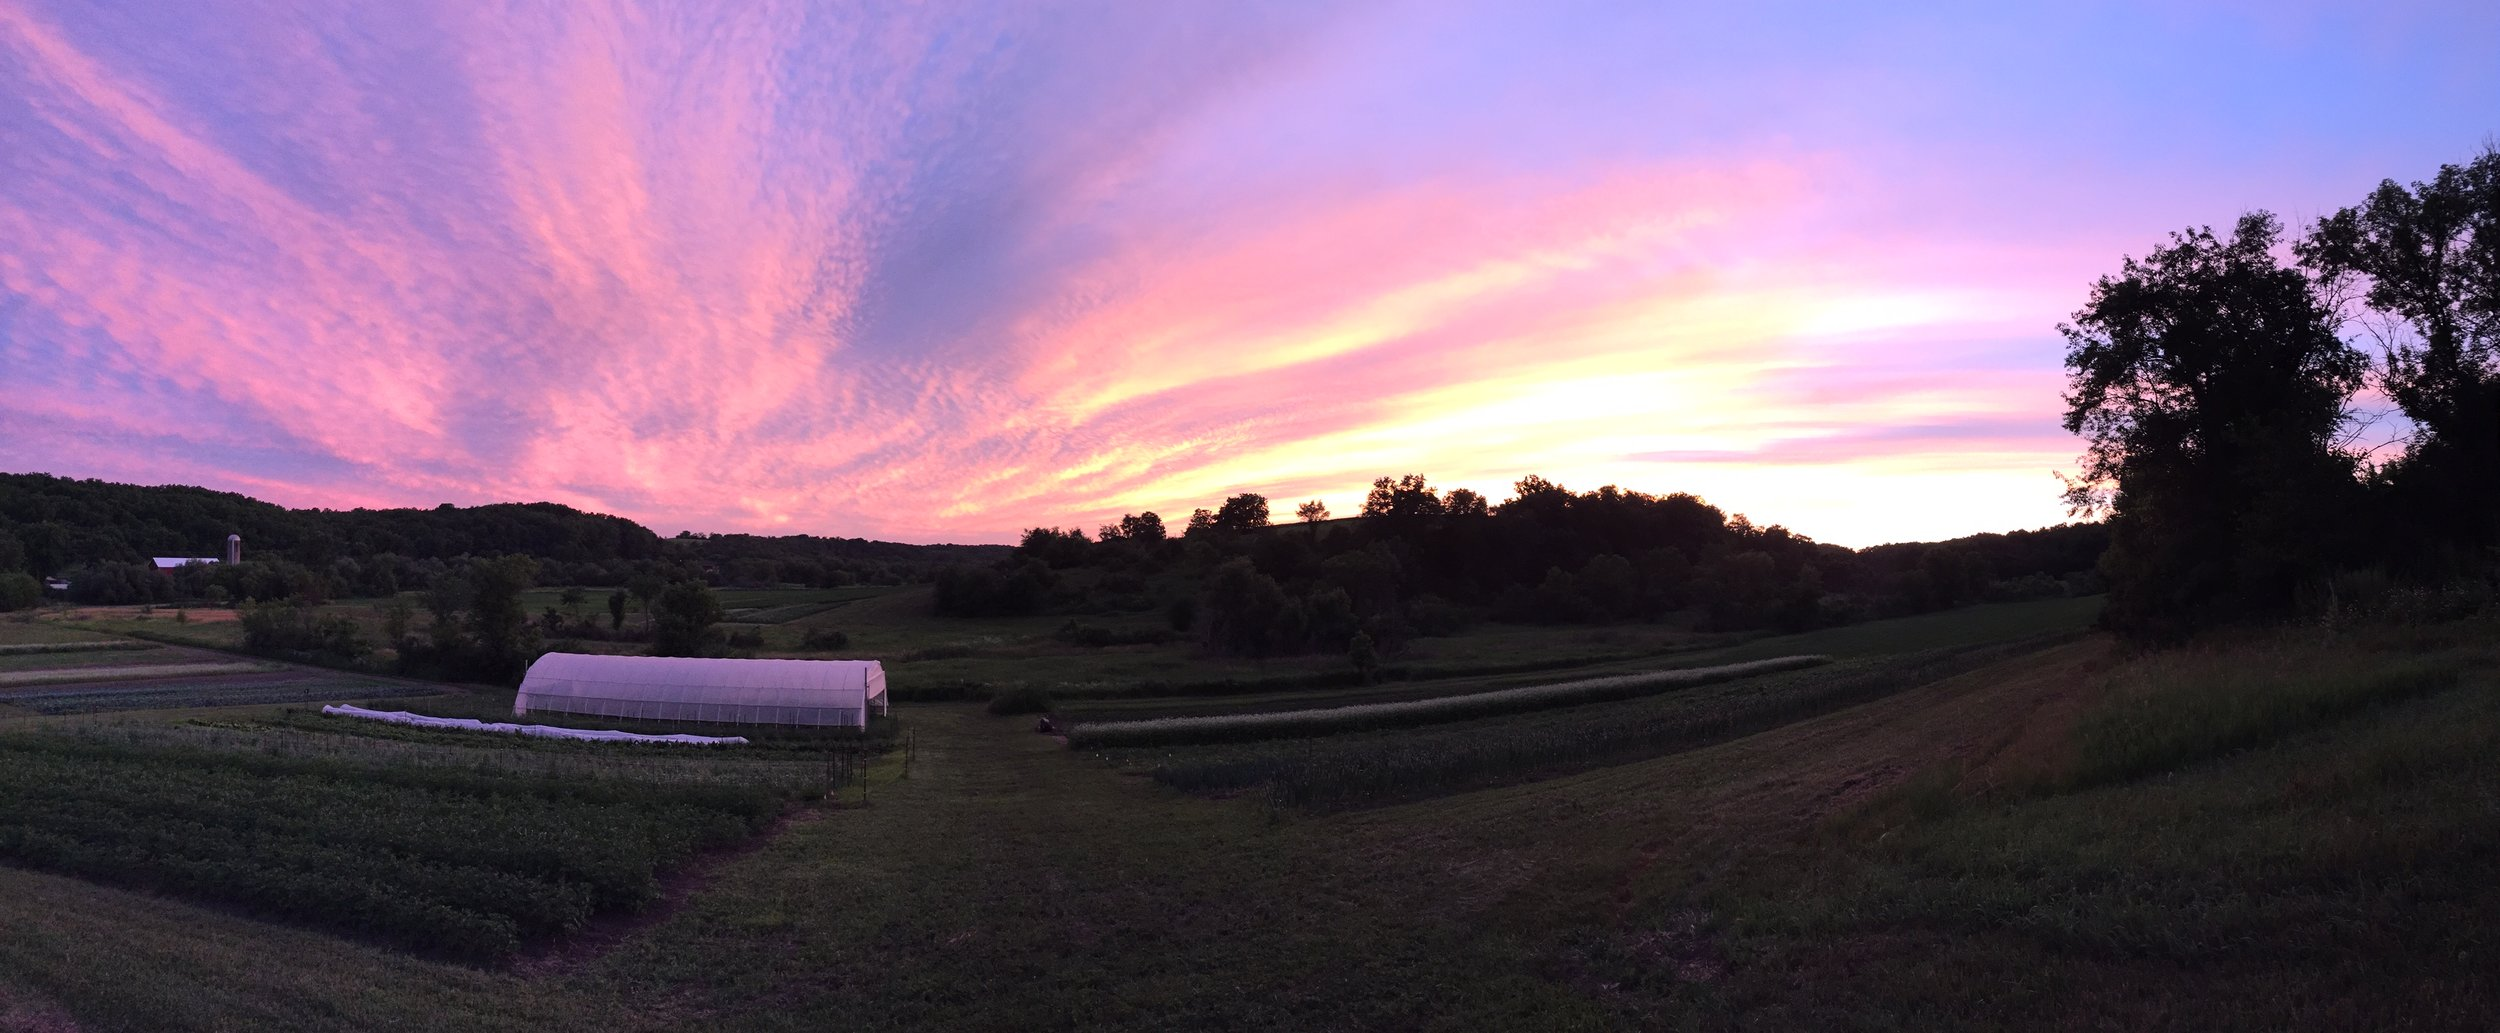 Sunset on the farm